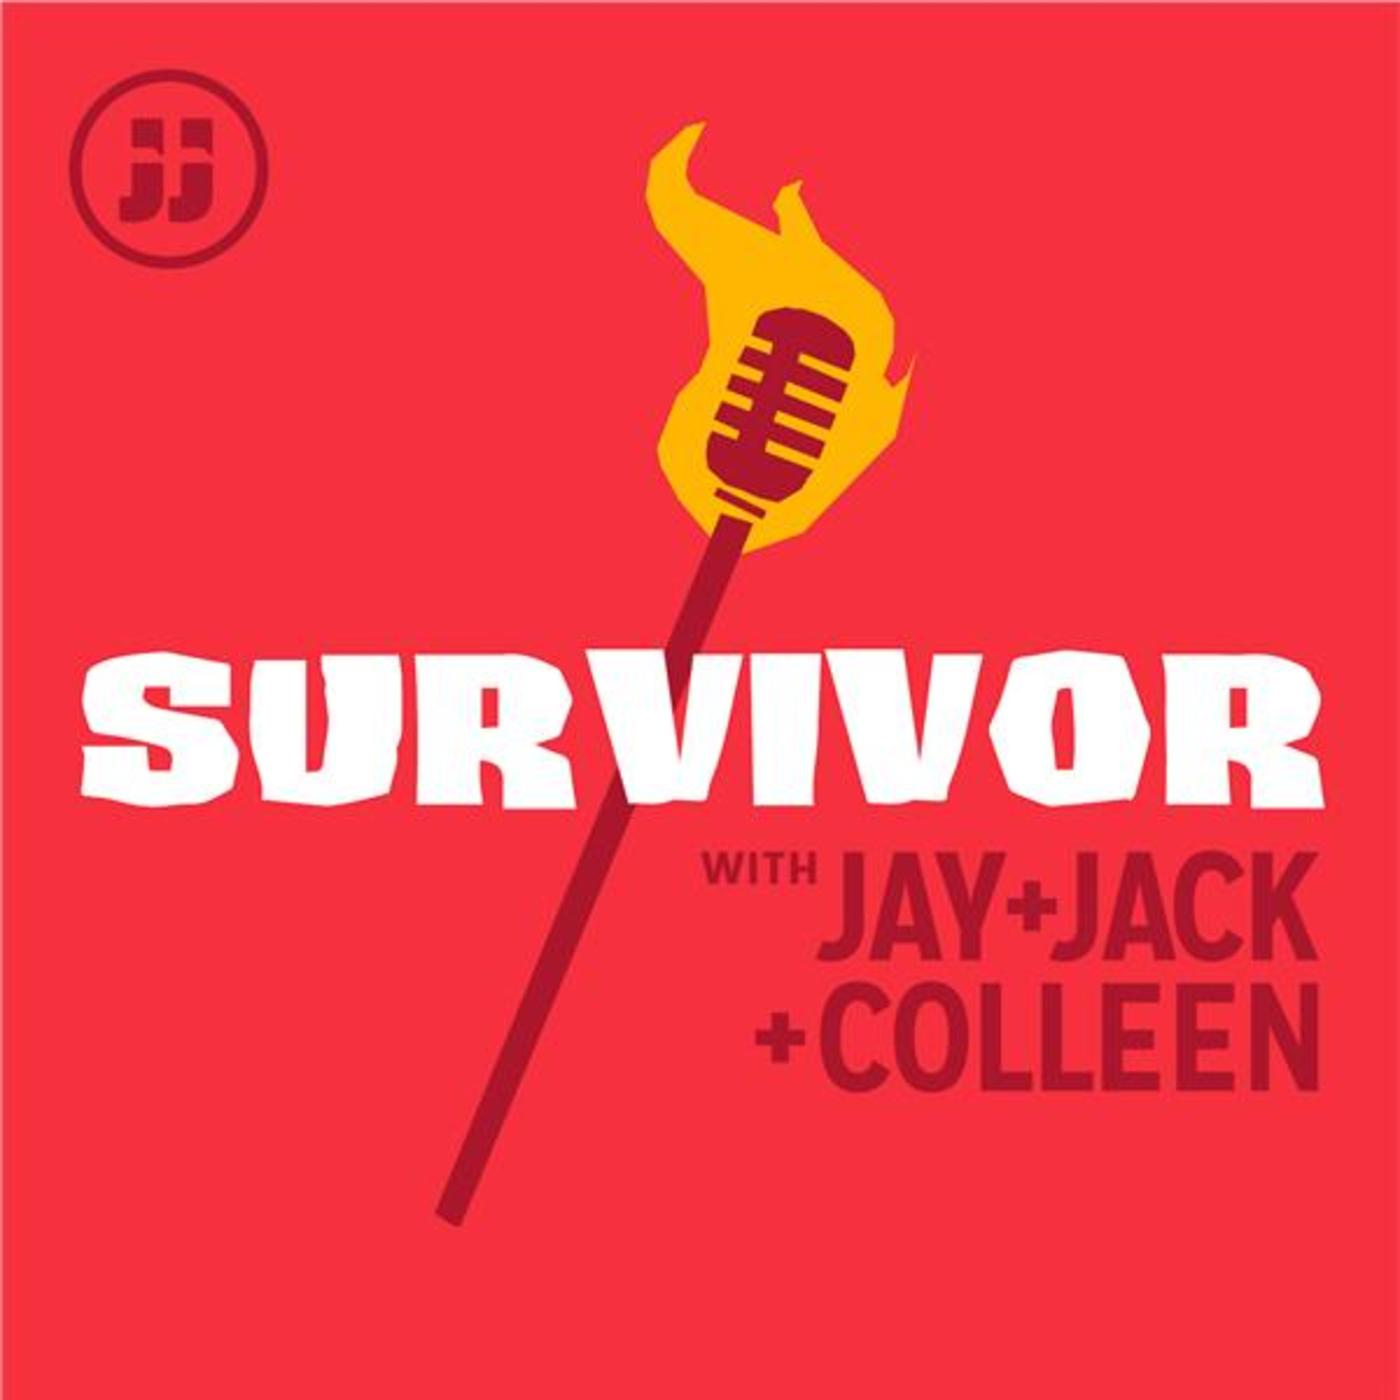 Survivor with Jay, Jack, & Colleen